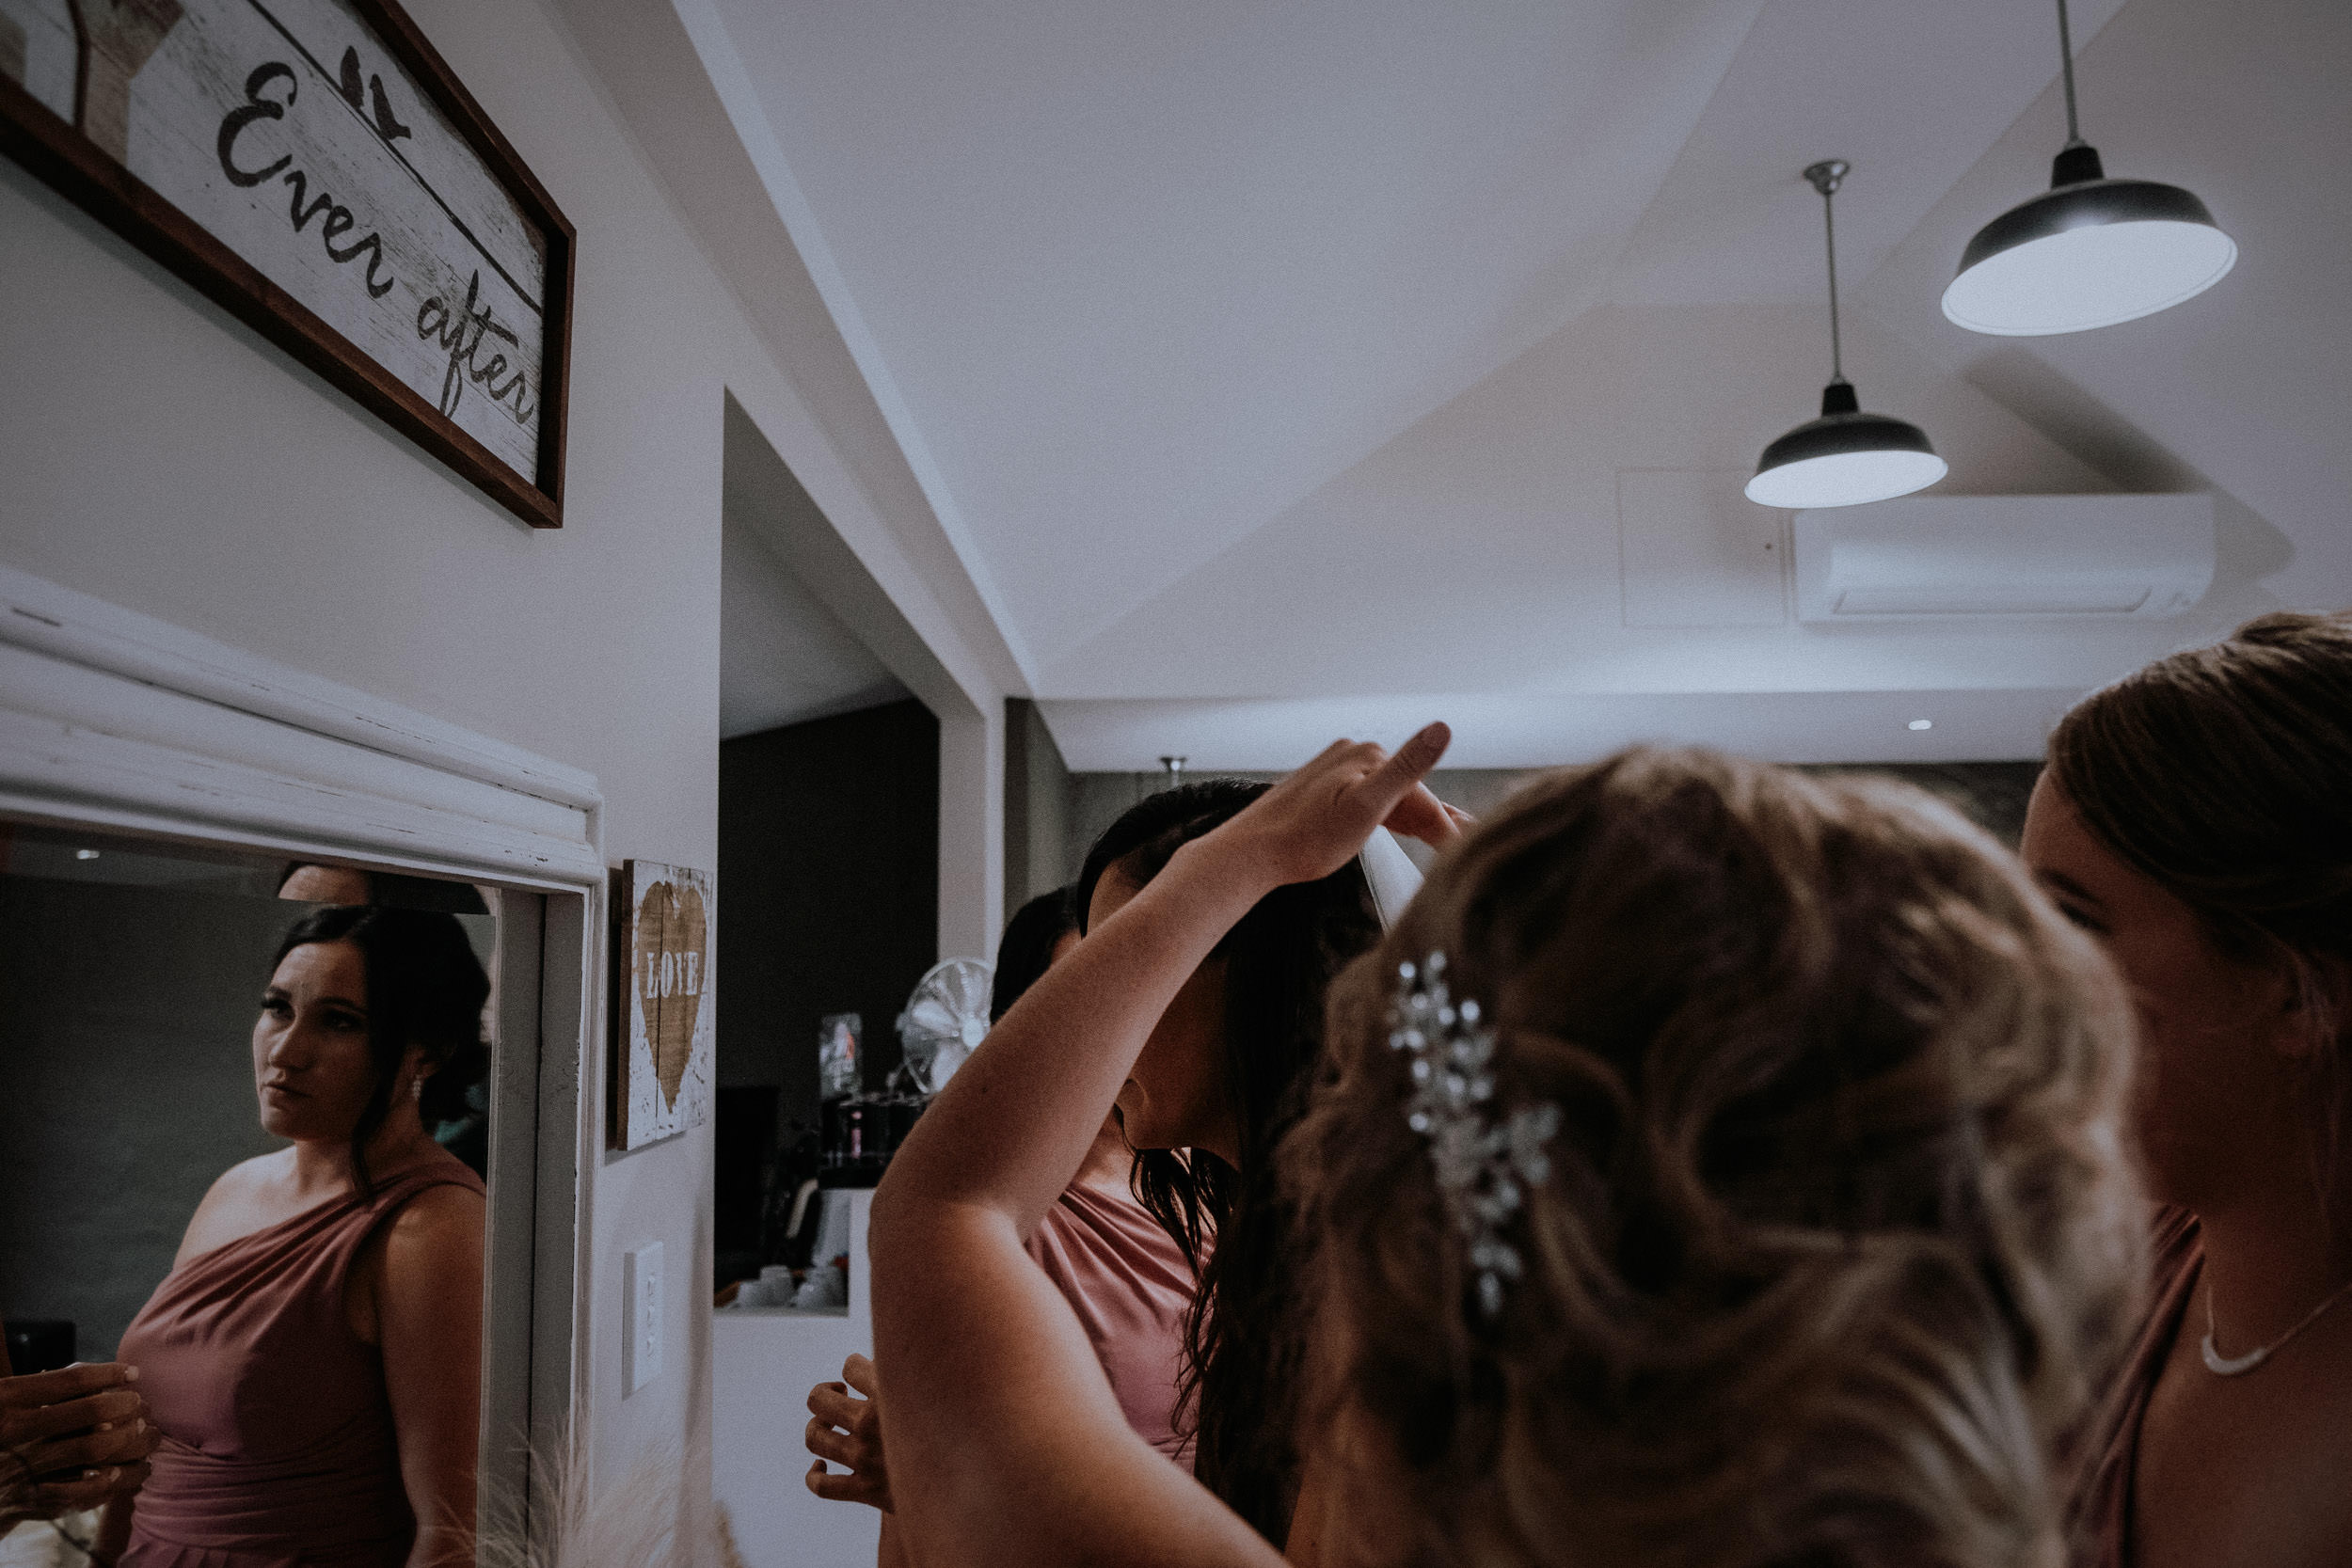 A photojournalistic candid shot of bride and bridesmaids getting ready for the wedding